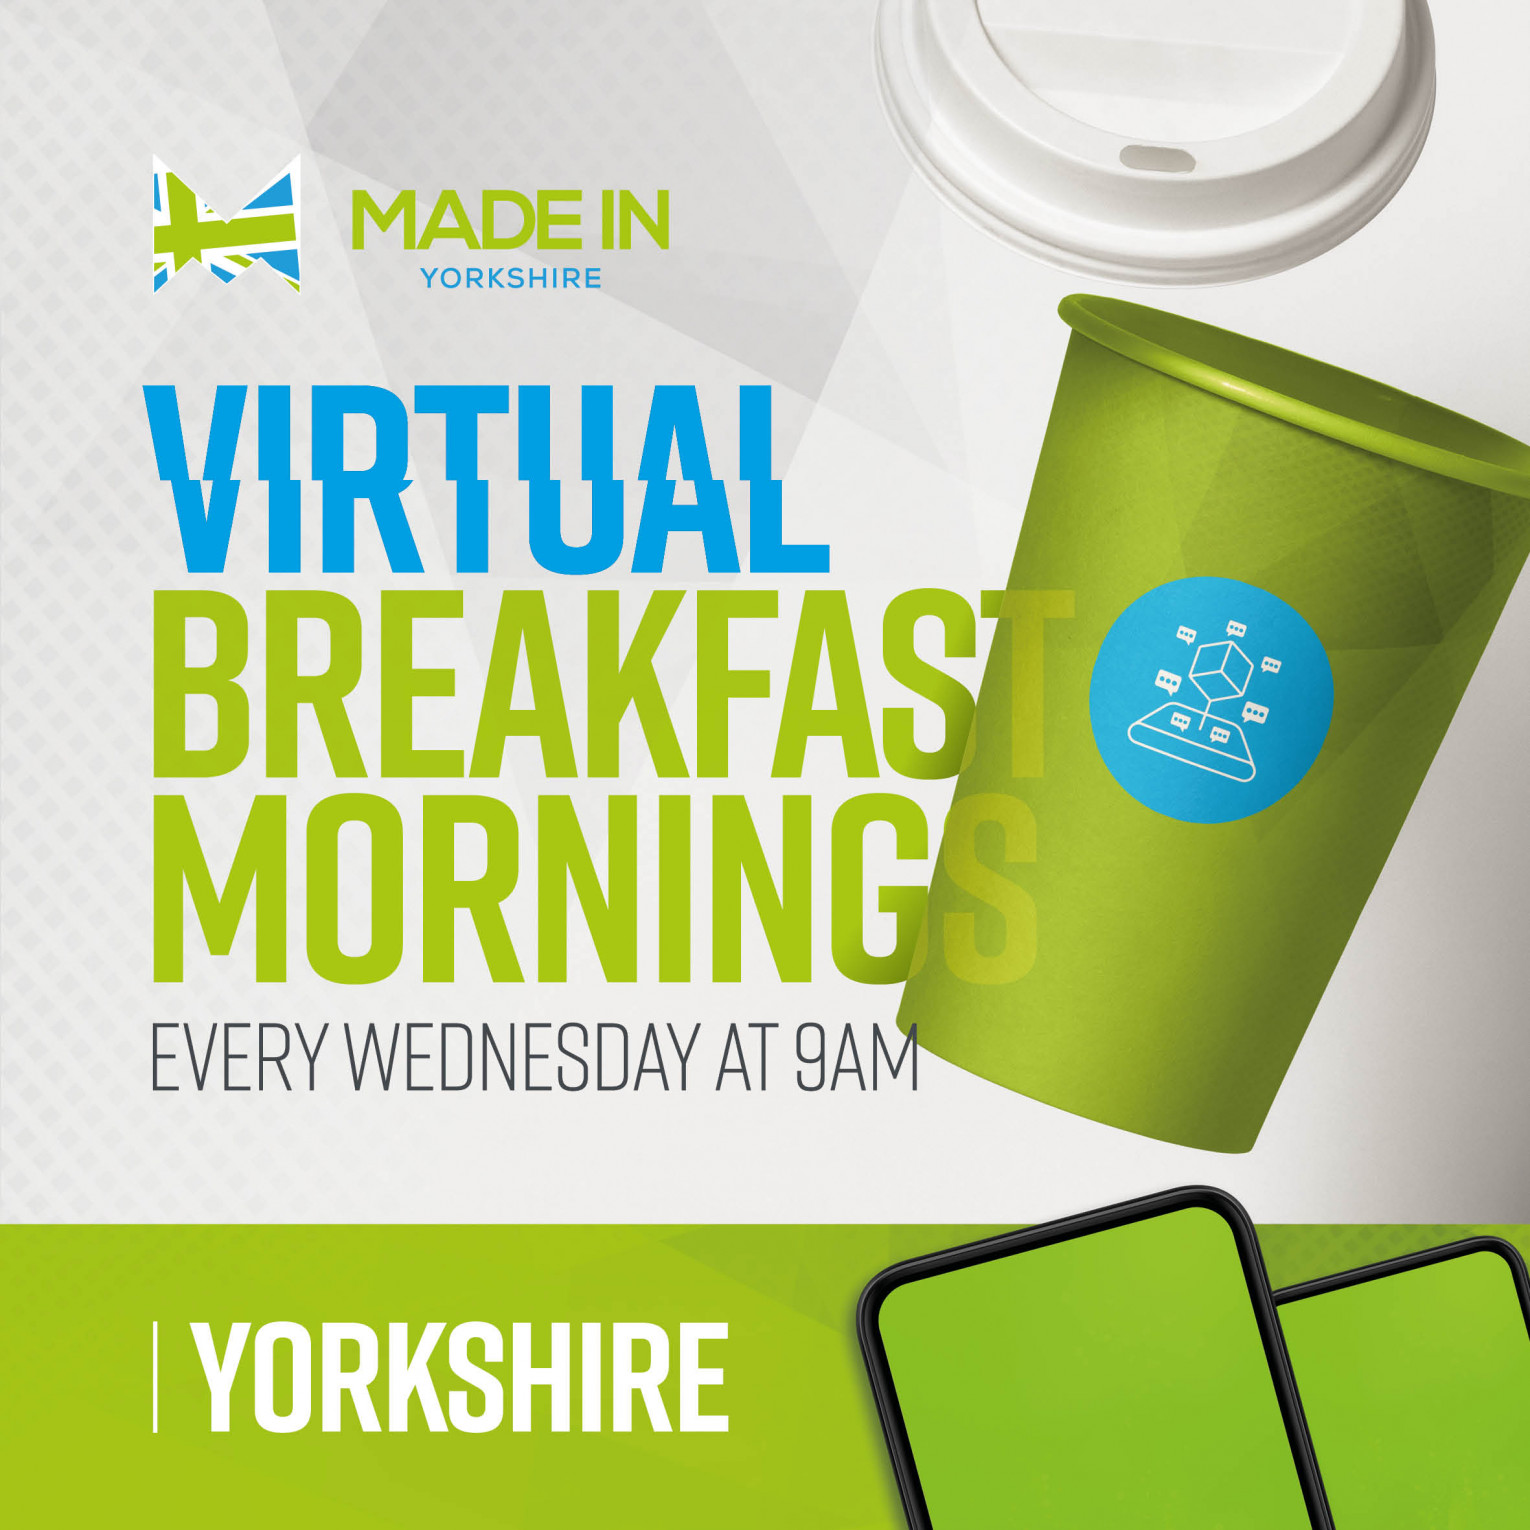 Made in Yorkshire Virtual Breakfast Networking event with CBE+